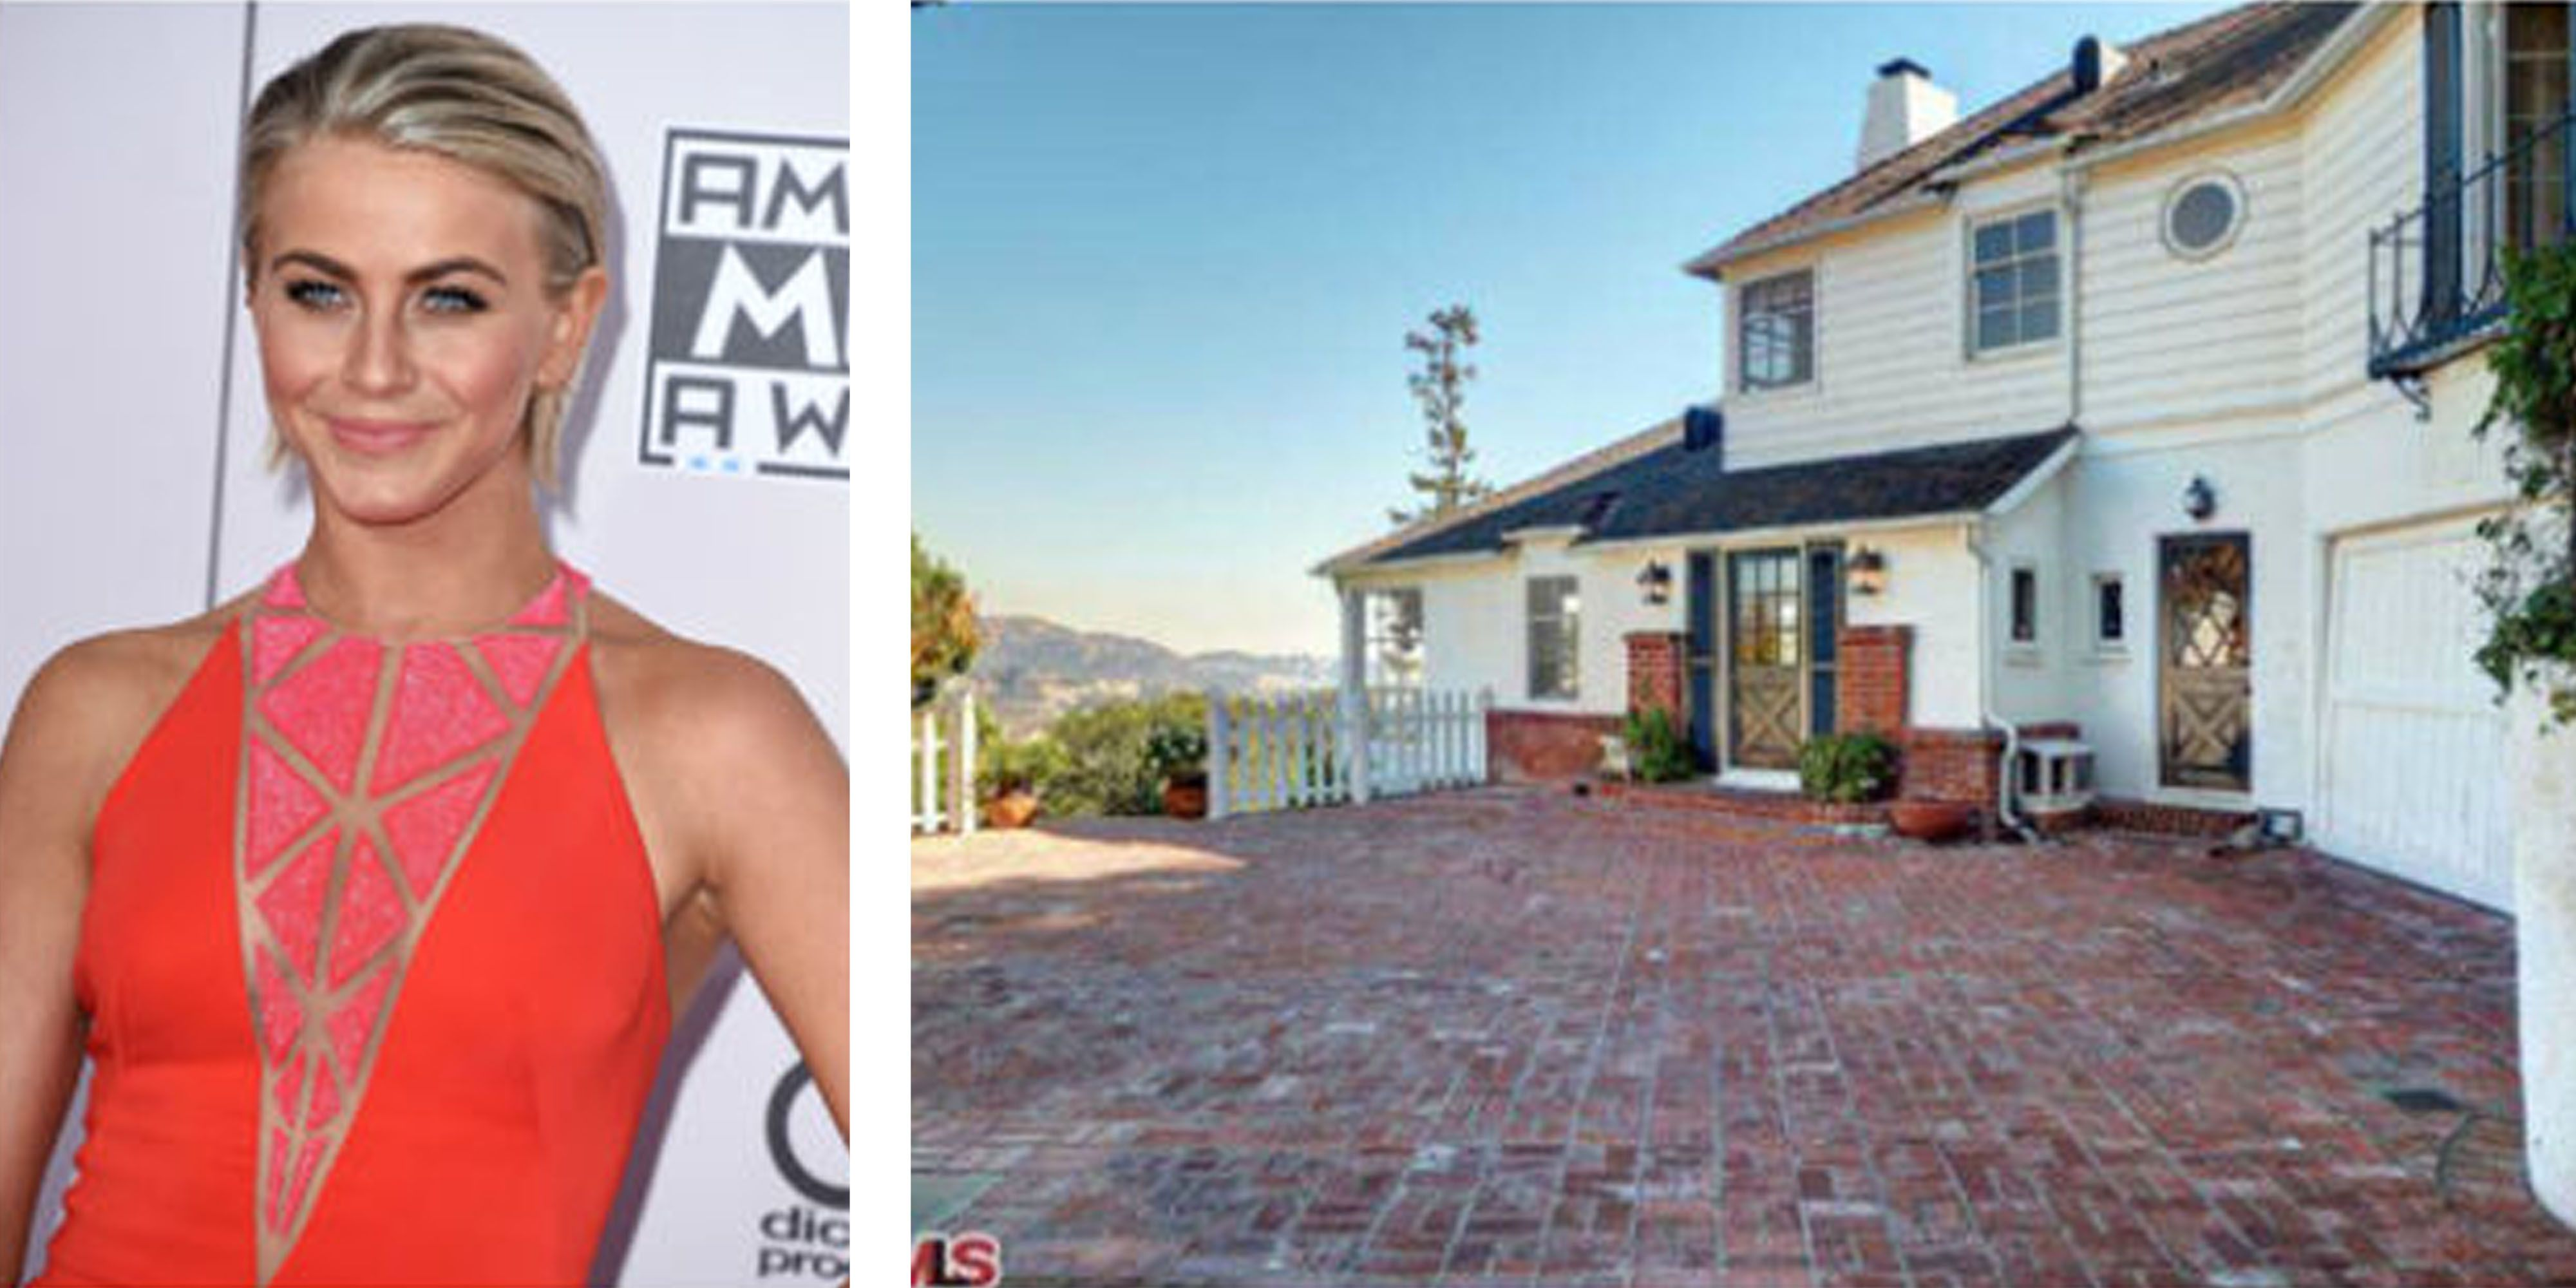 6af5ba9205169c1addb96b58930251e8 - How To Get A Celebrity To Come To Your House